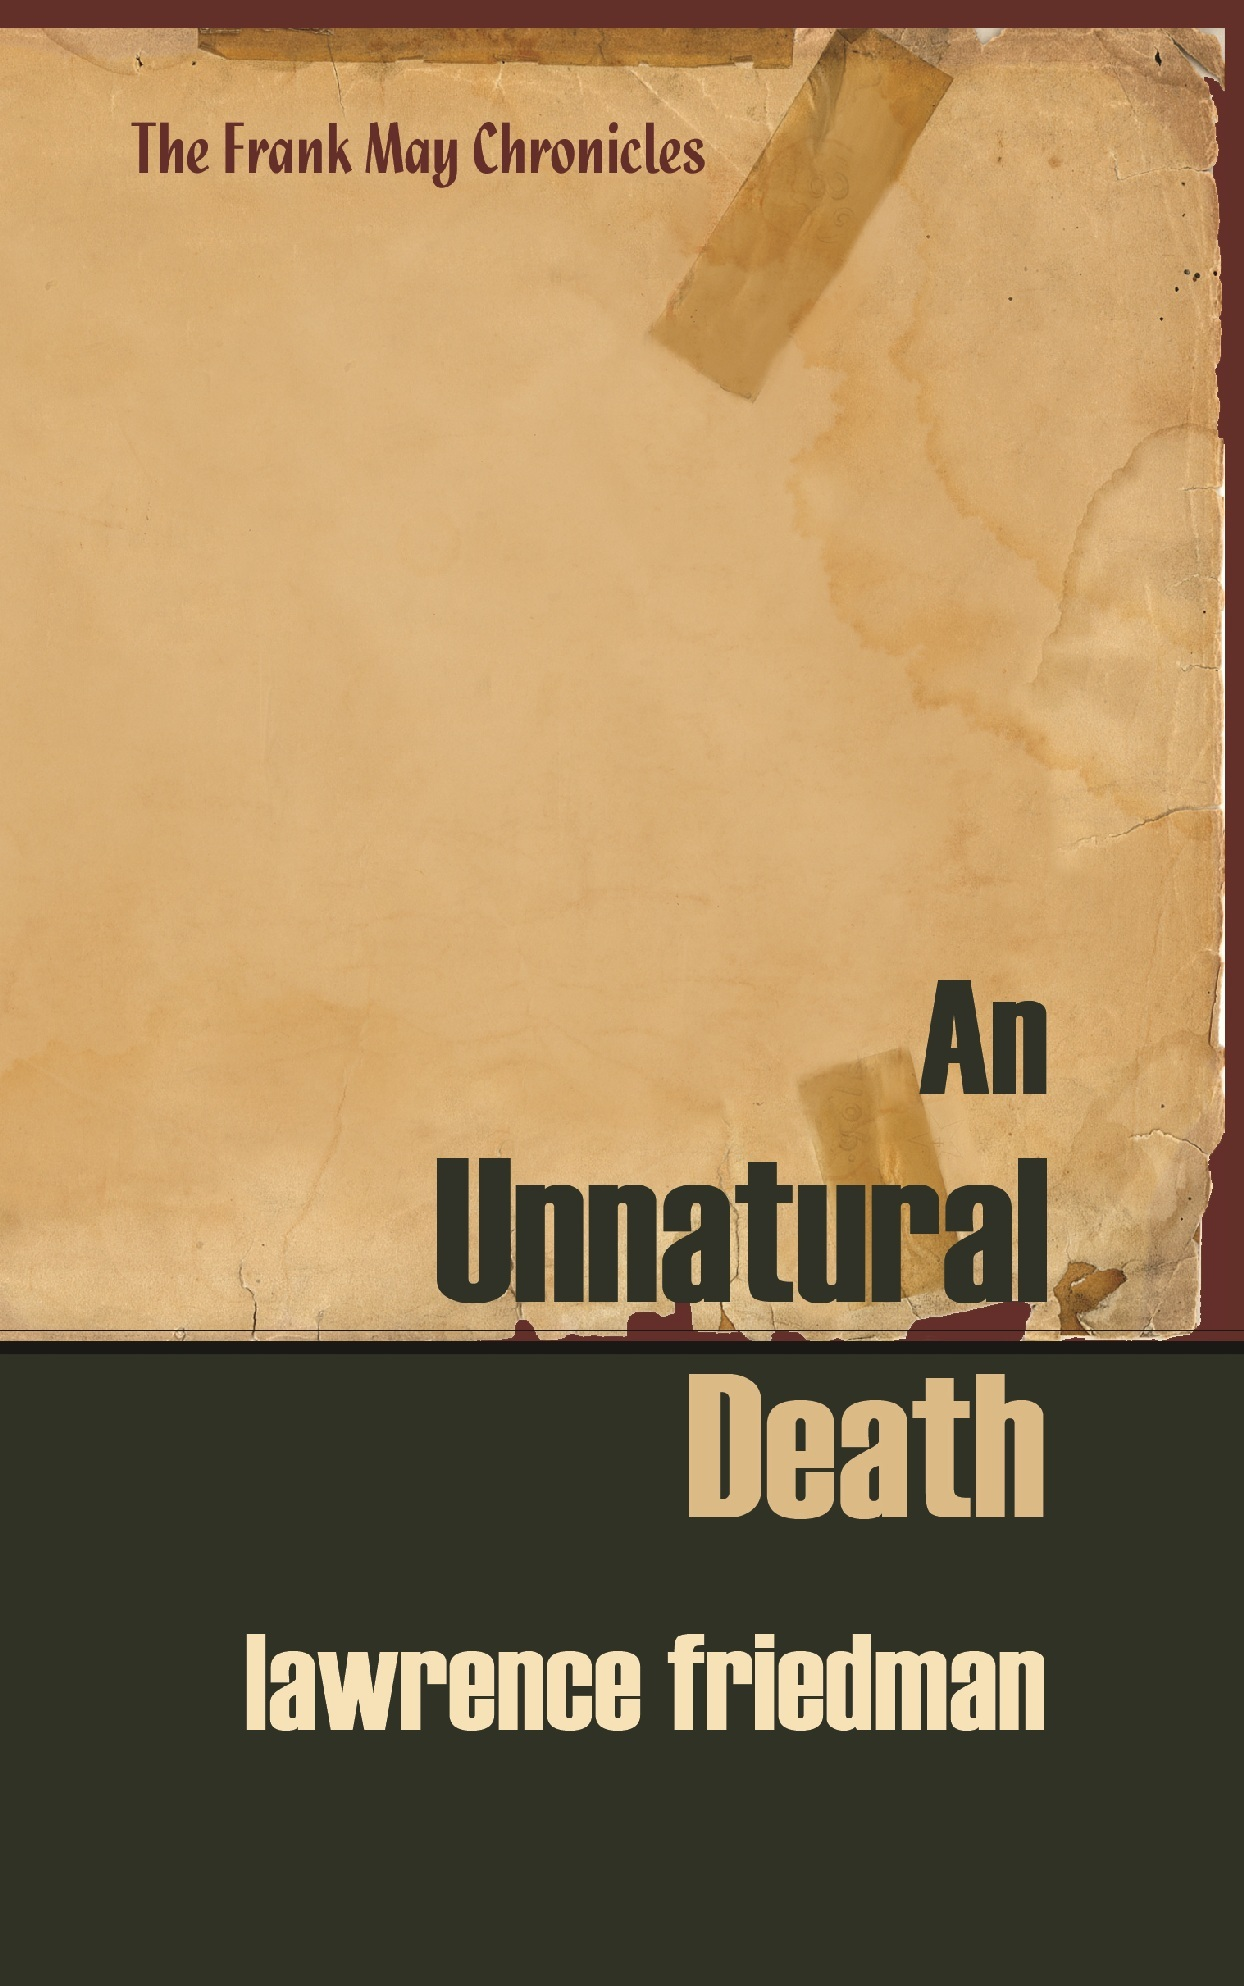 An Unnatural Death